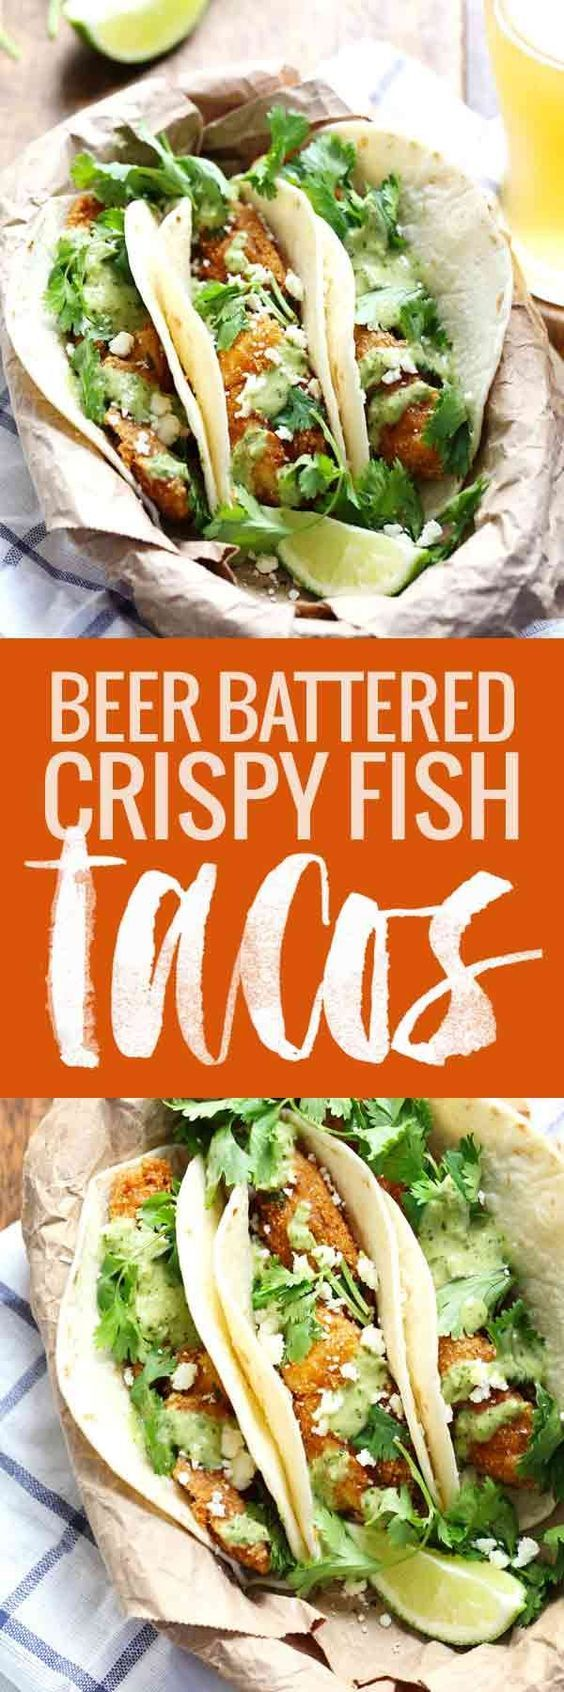 Crispy Fish Tacos with Jalapeño Sauce - lightly battered and fried fish served with a fresh, spicy homemade sauce! simple and delicious.